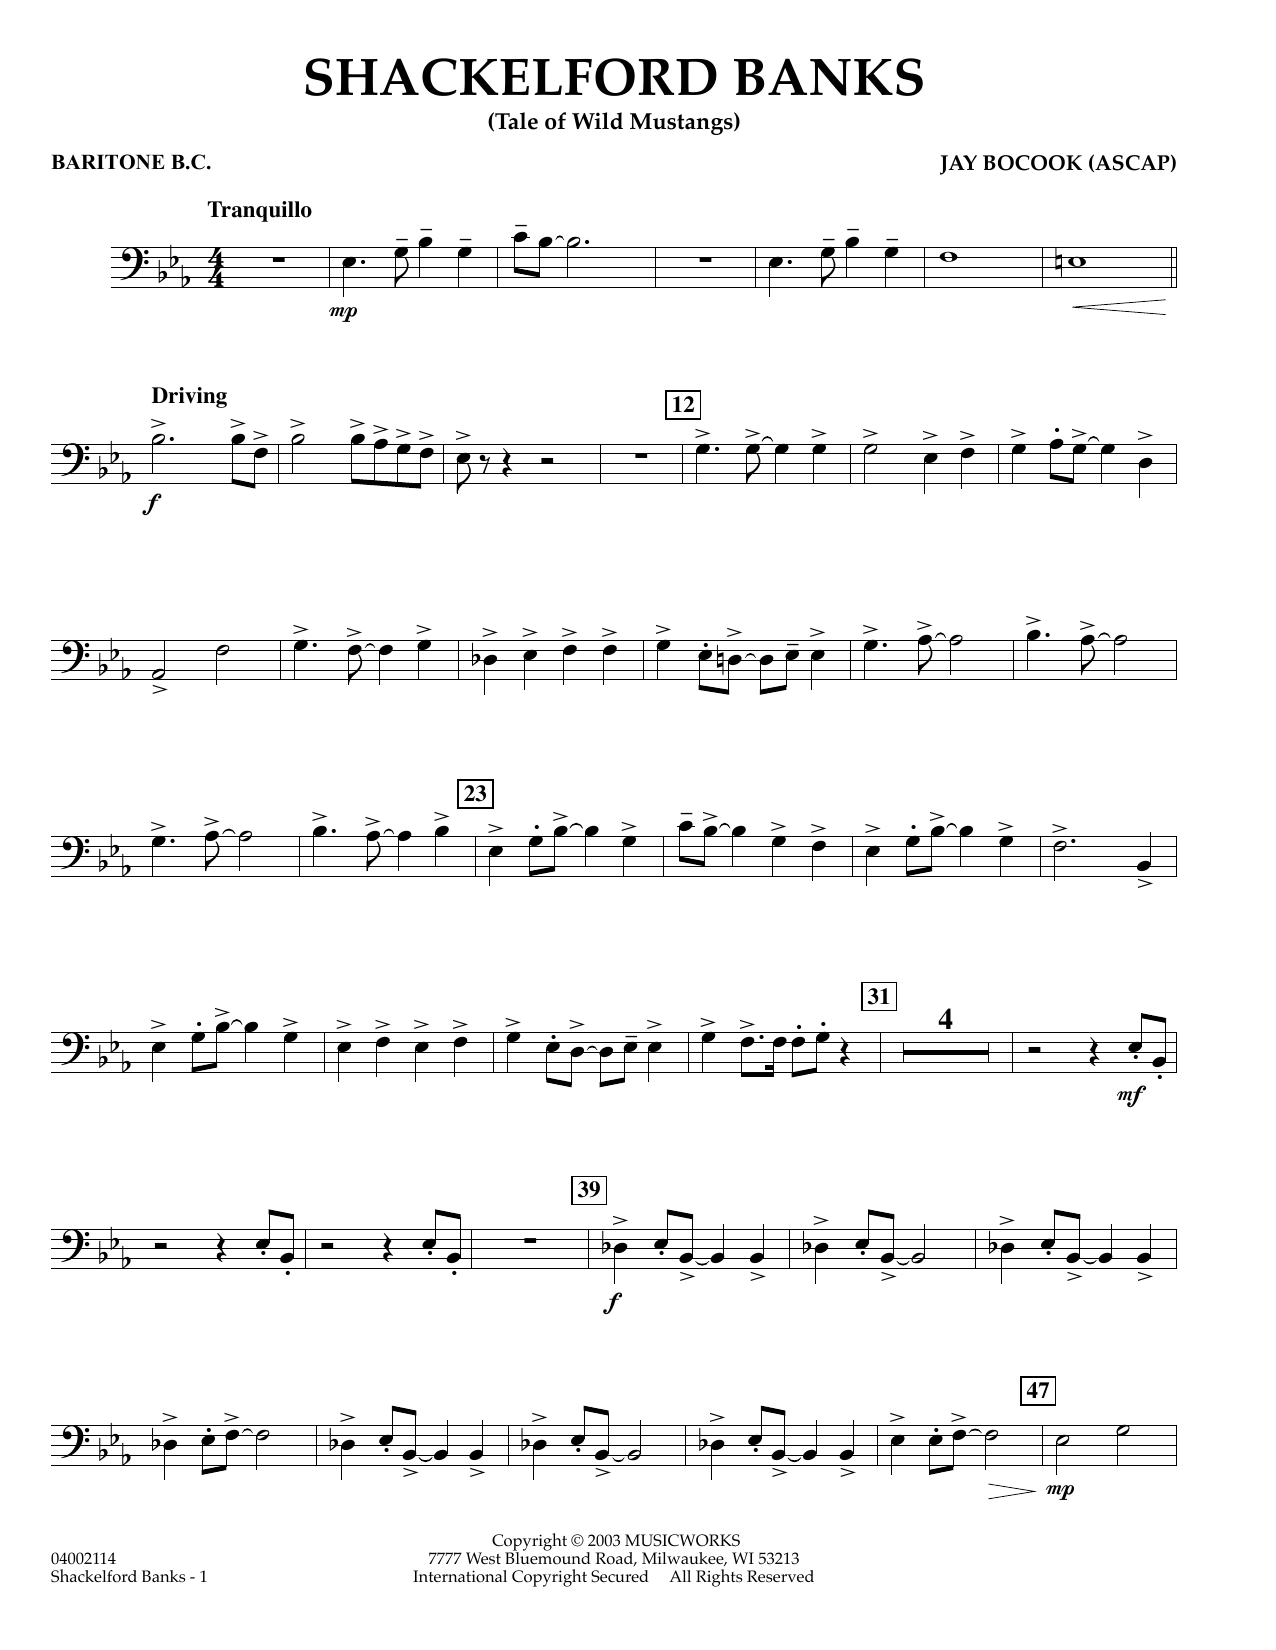 Jay Bocook Shackelford Banks - Baritone B.C. sheet music preview music notes and score for Concert Band including 2 page(s)